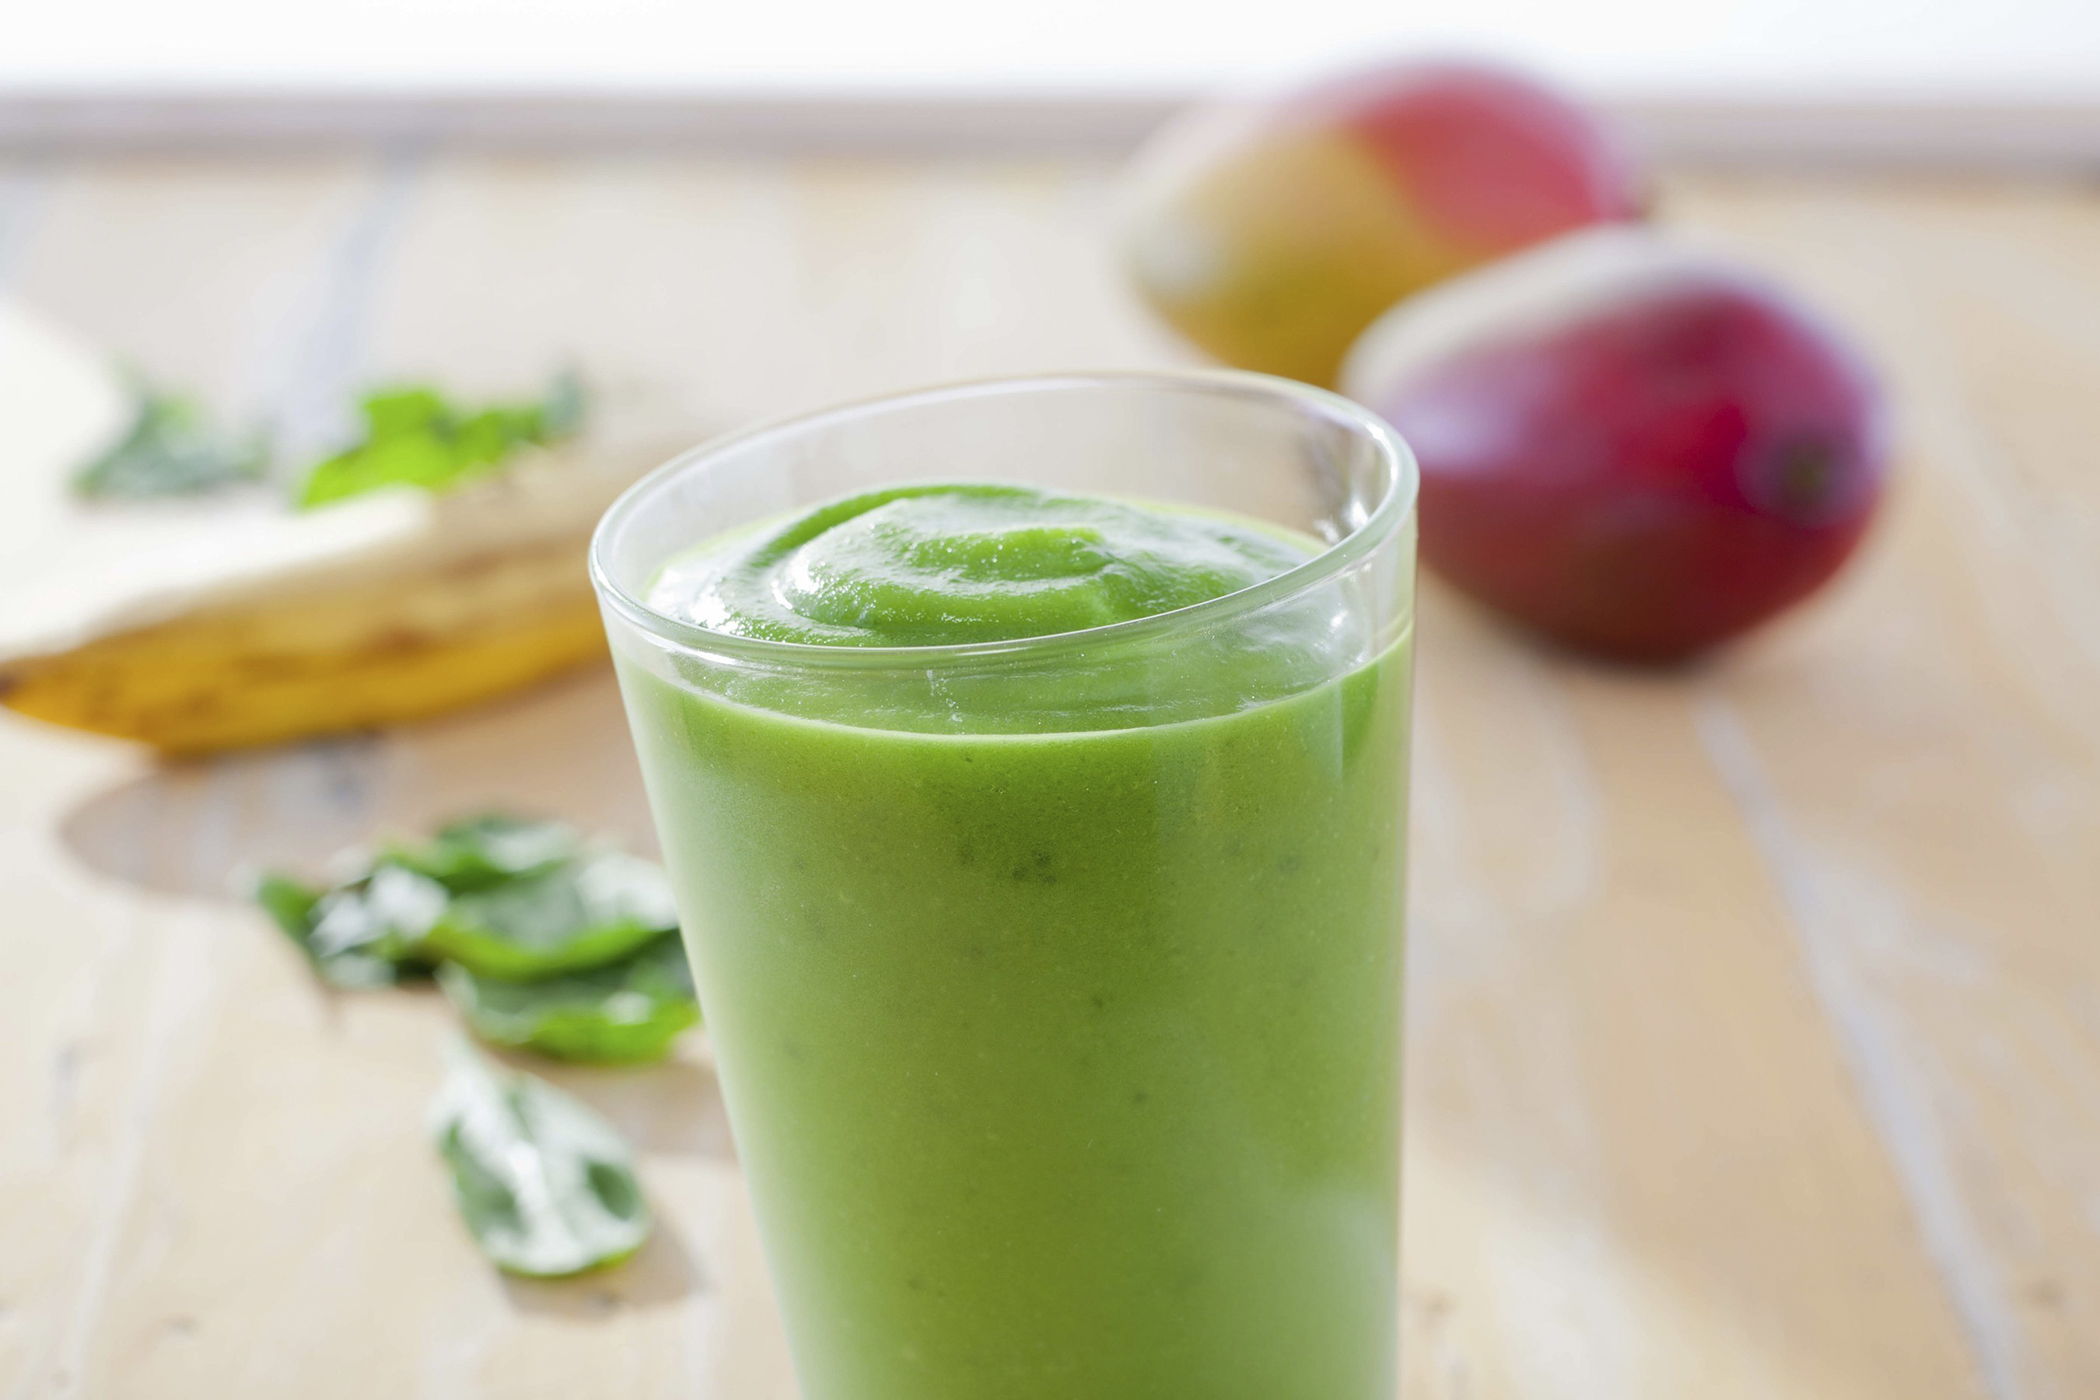 Tropical Smoothie Cafe's Classic Smoothie, Island Green.